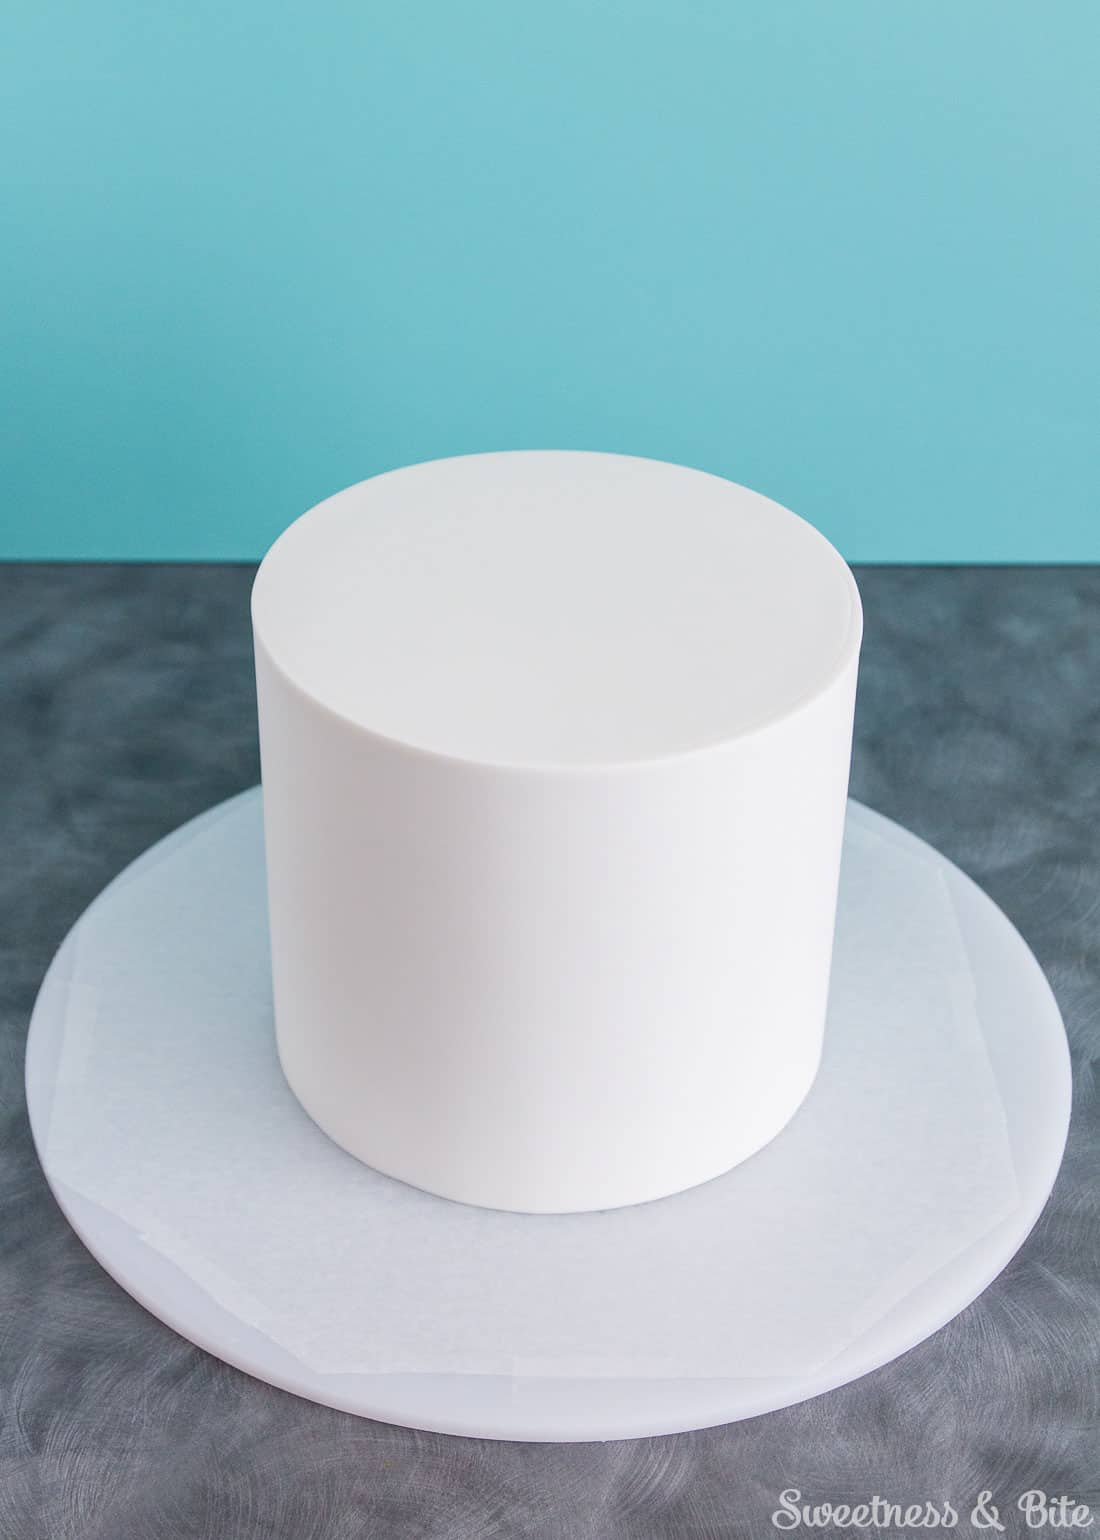 A six inch round cake covered in white fondant icing.